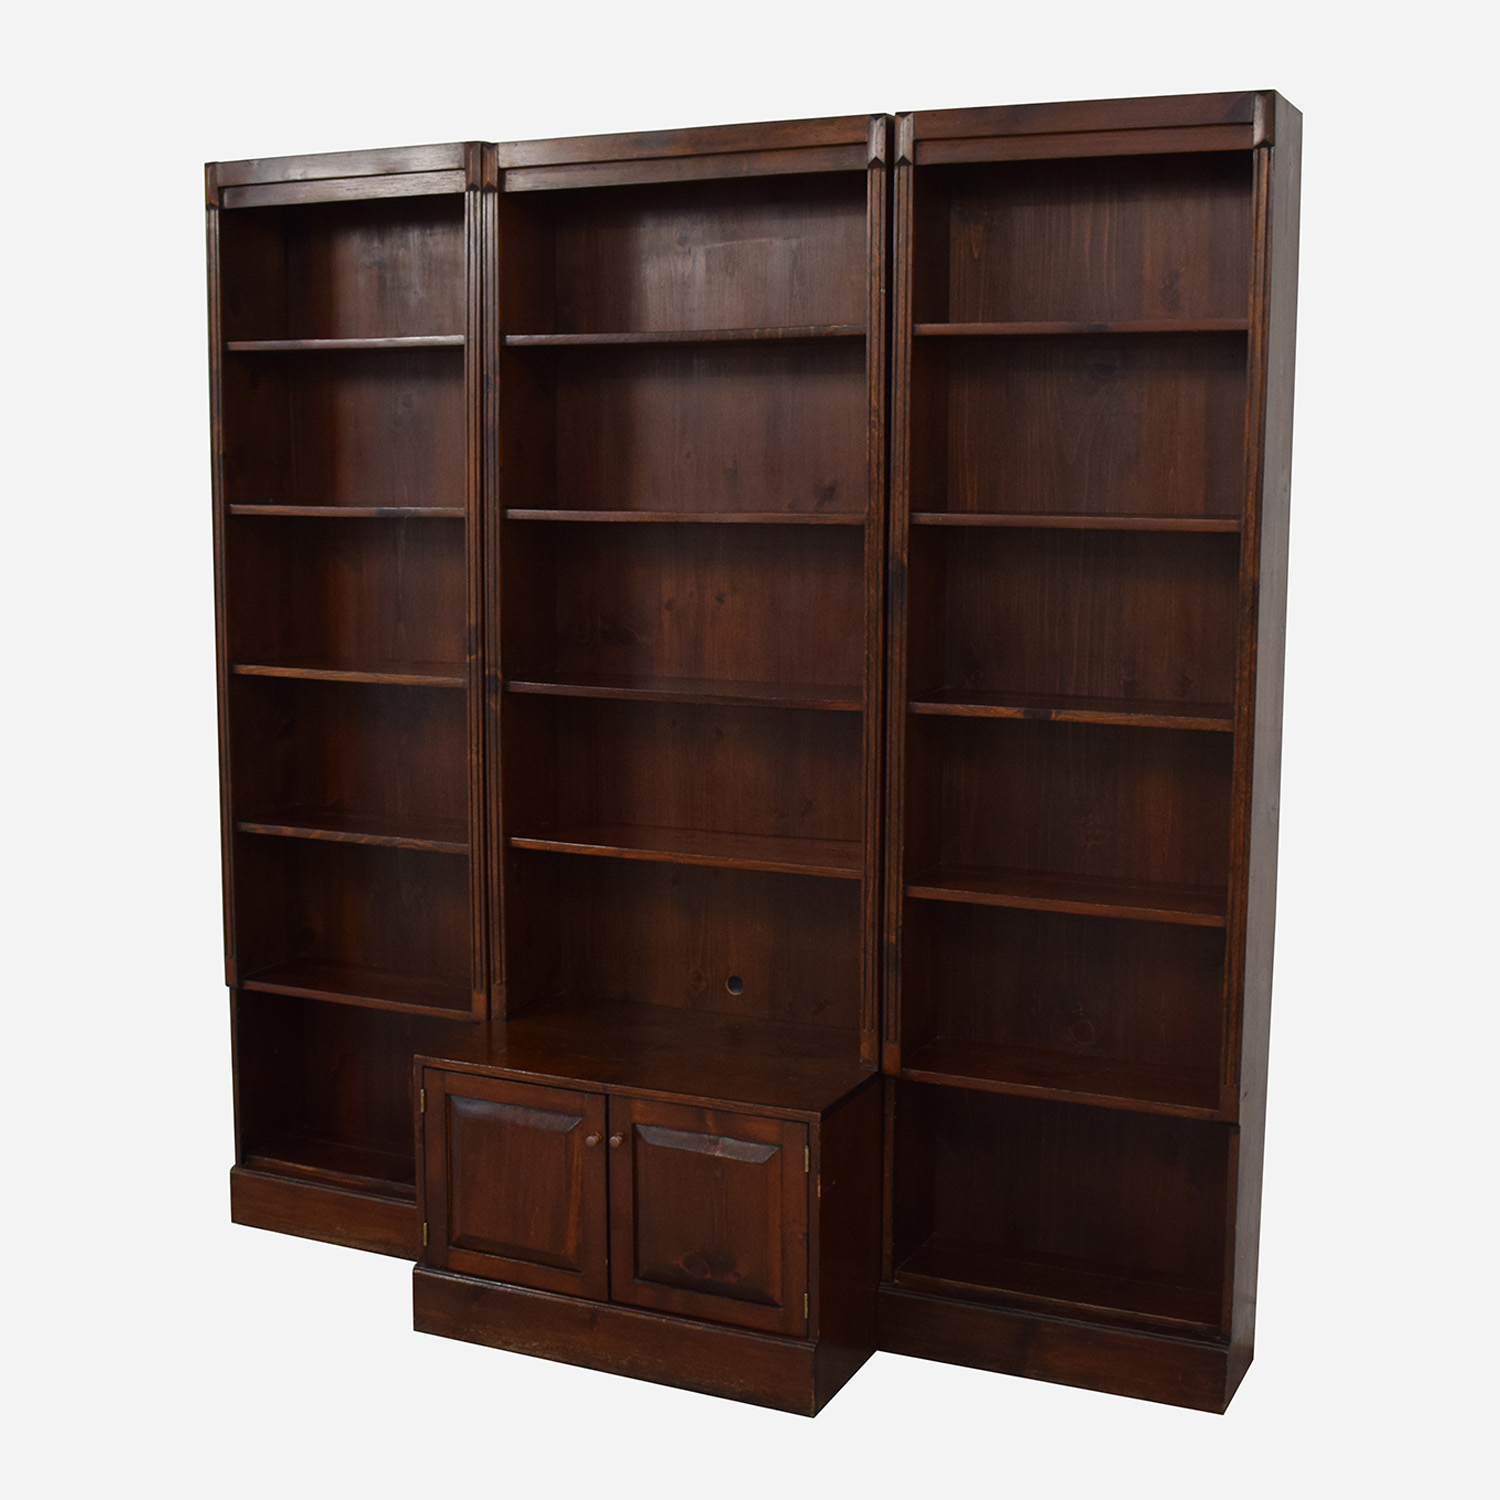 buy Three Bookshelves With Cabinet  Storage